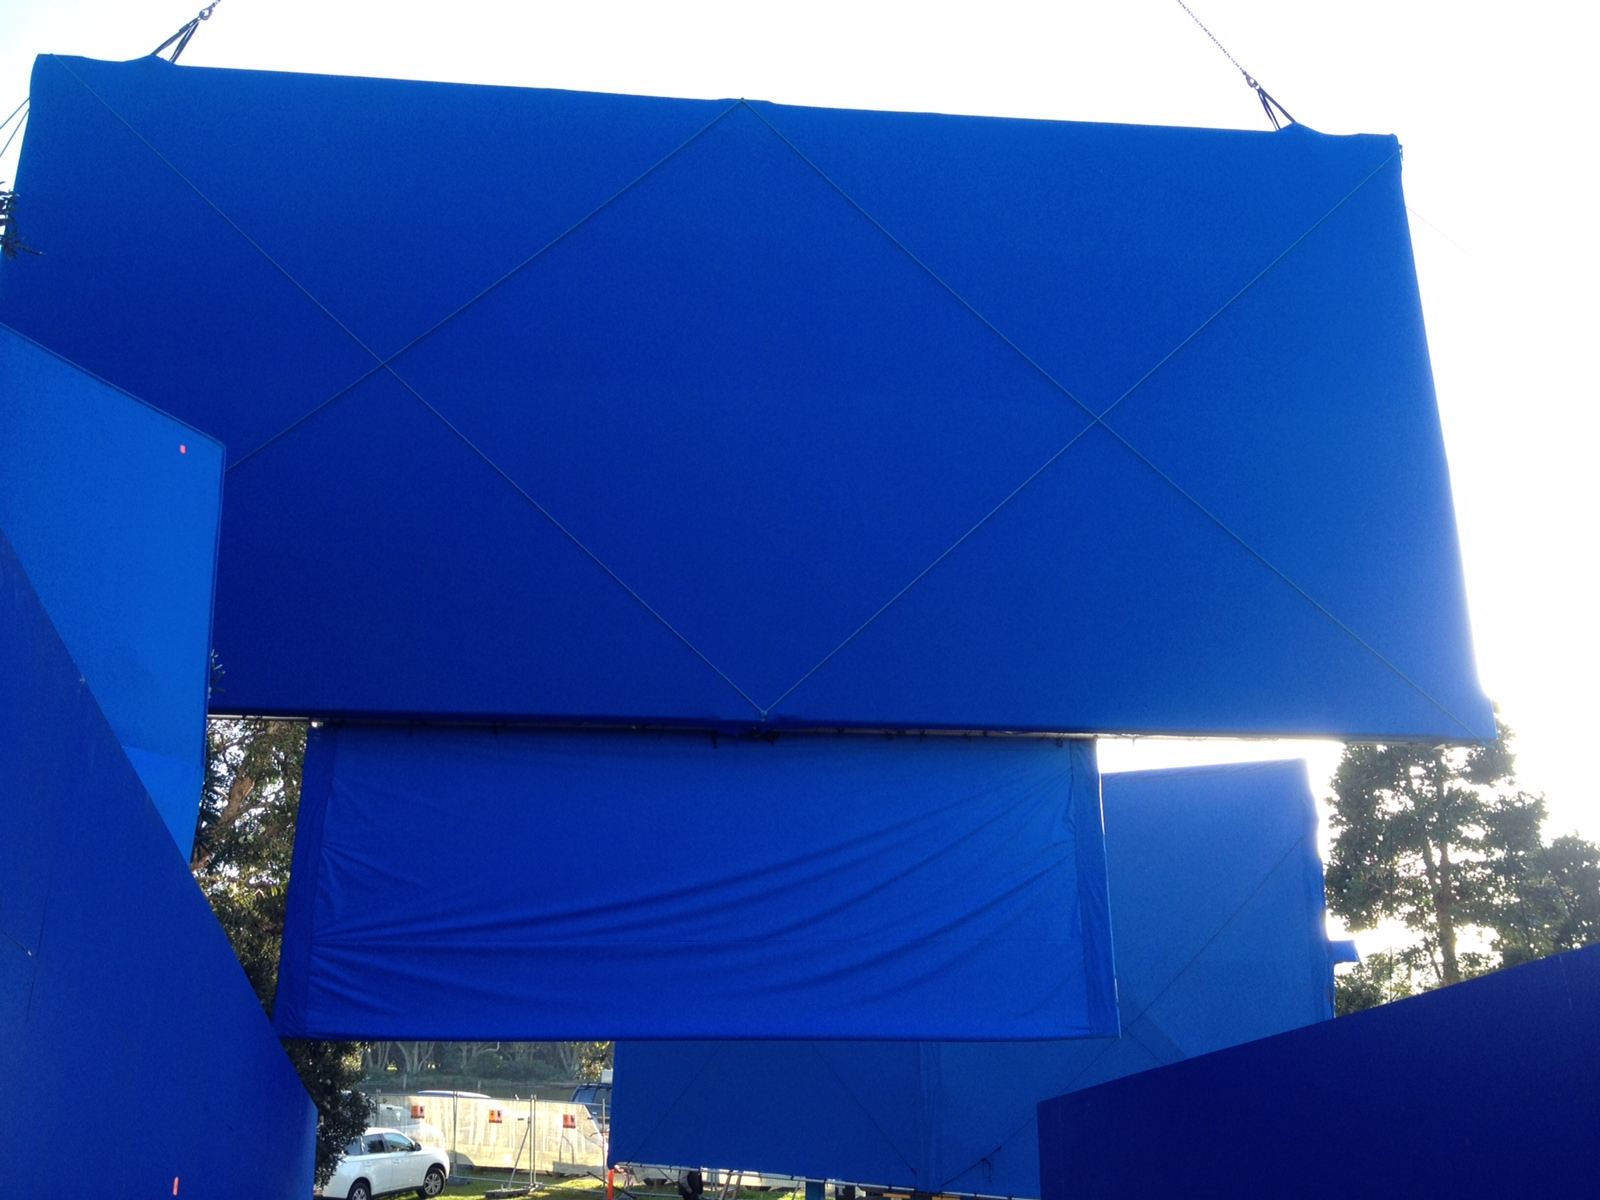 A cluster of blue screens on set outdoors